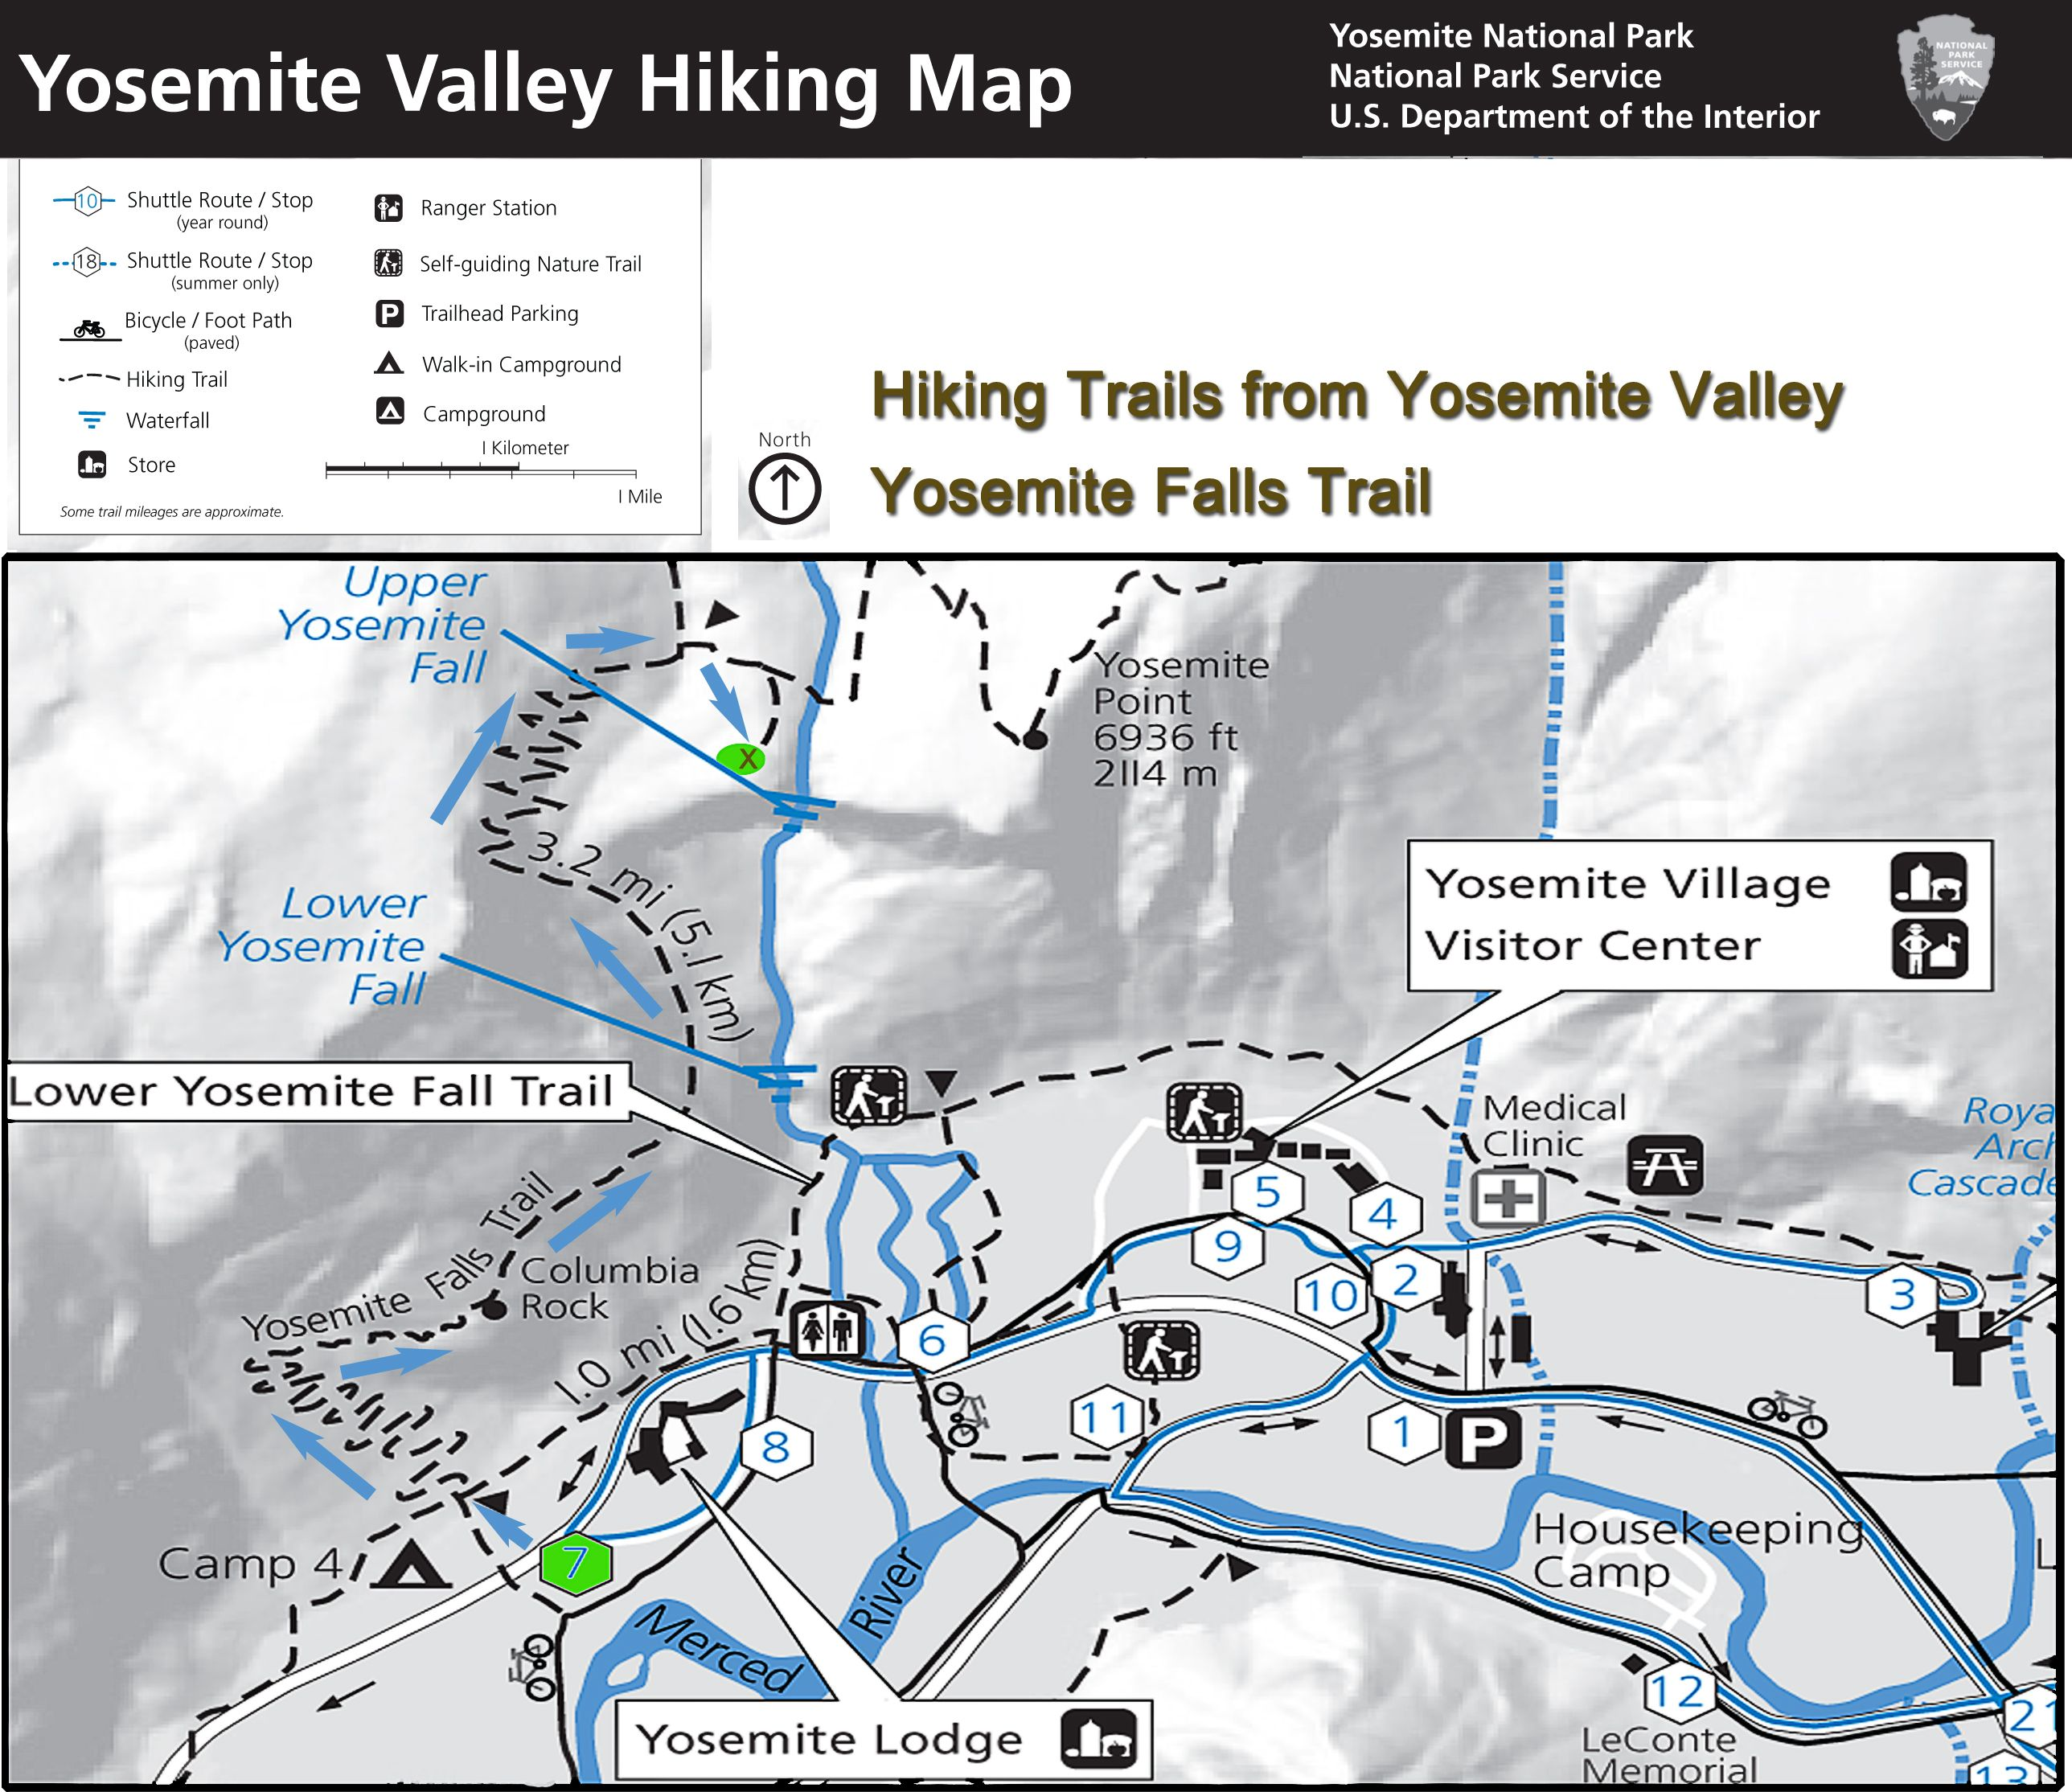 Yosemite Hiking Map Yosemite Falls Trail Yosemite Falls is the